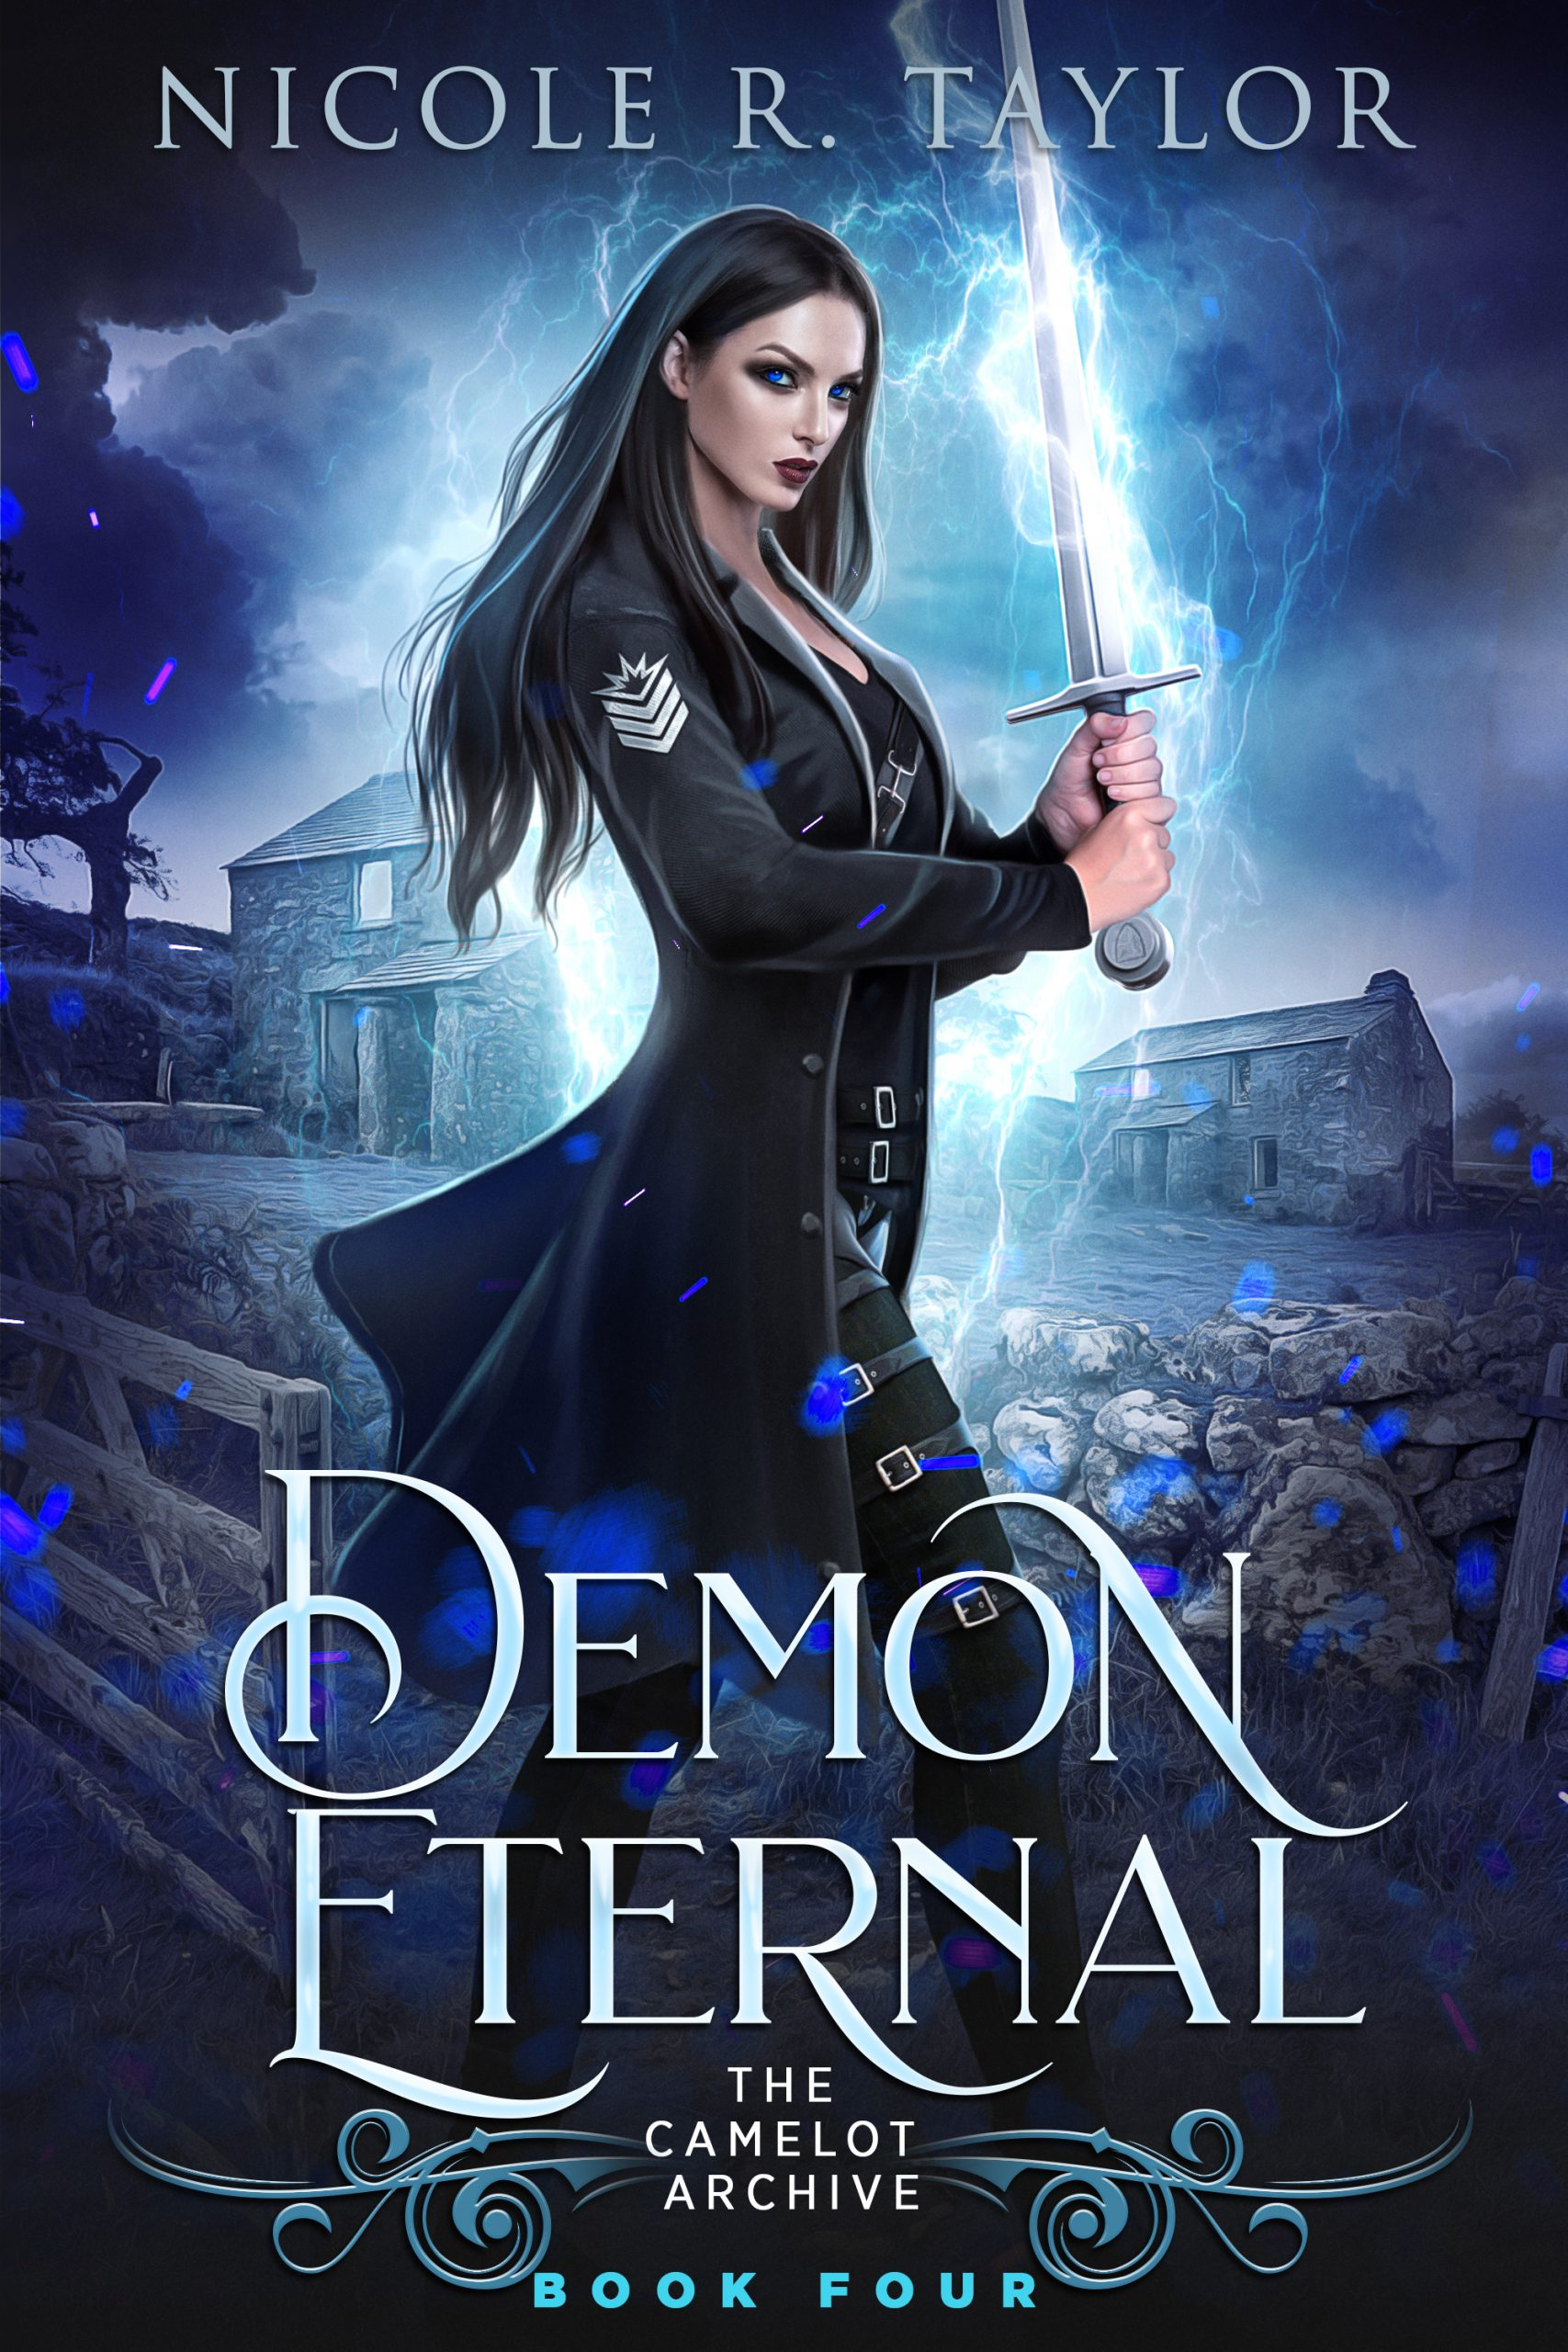 Demon Eternal (The Camelot Archive #4)